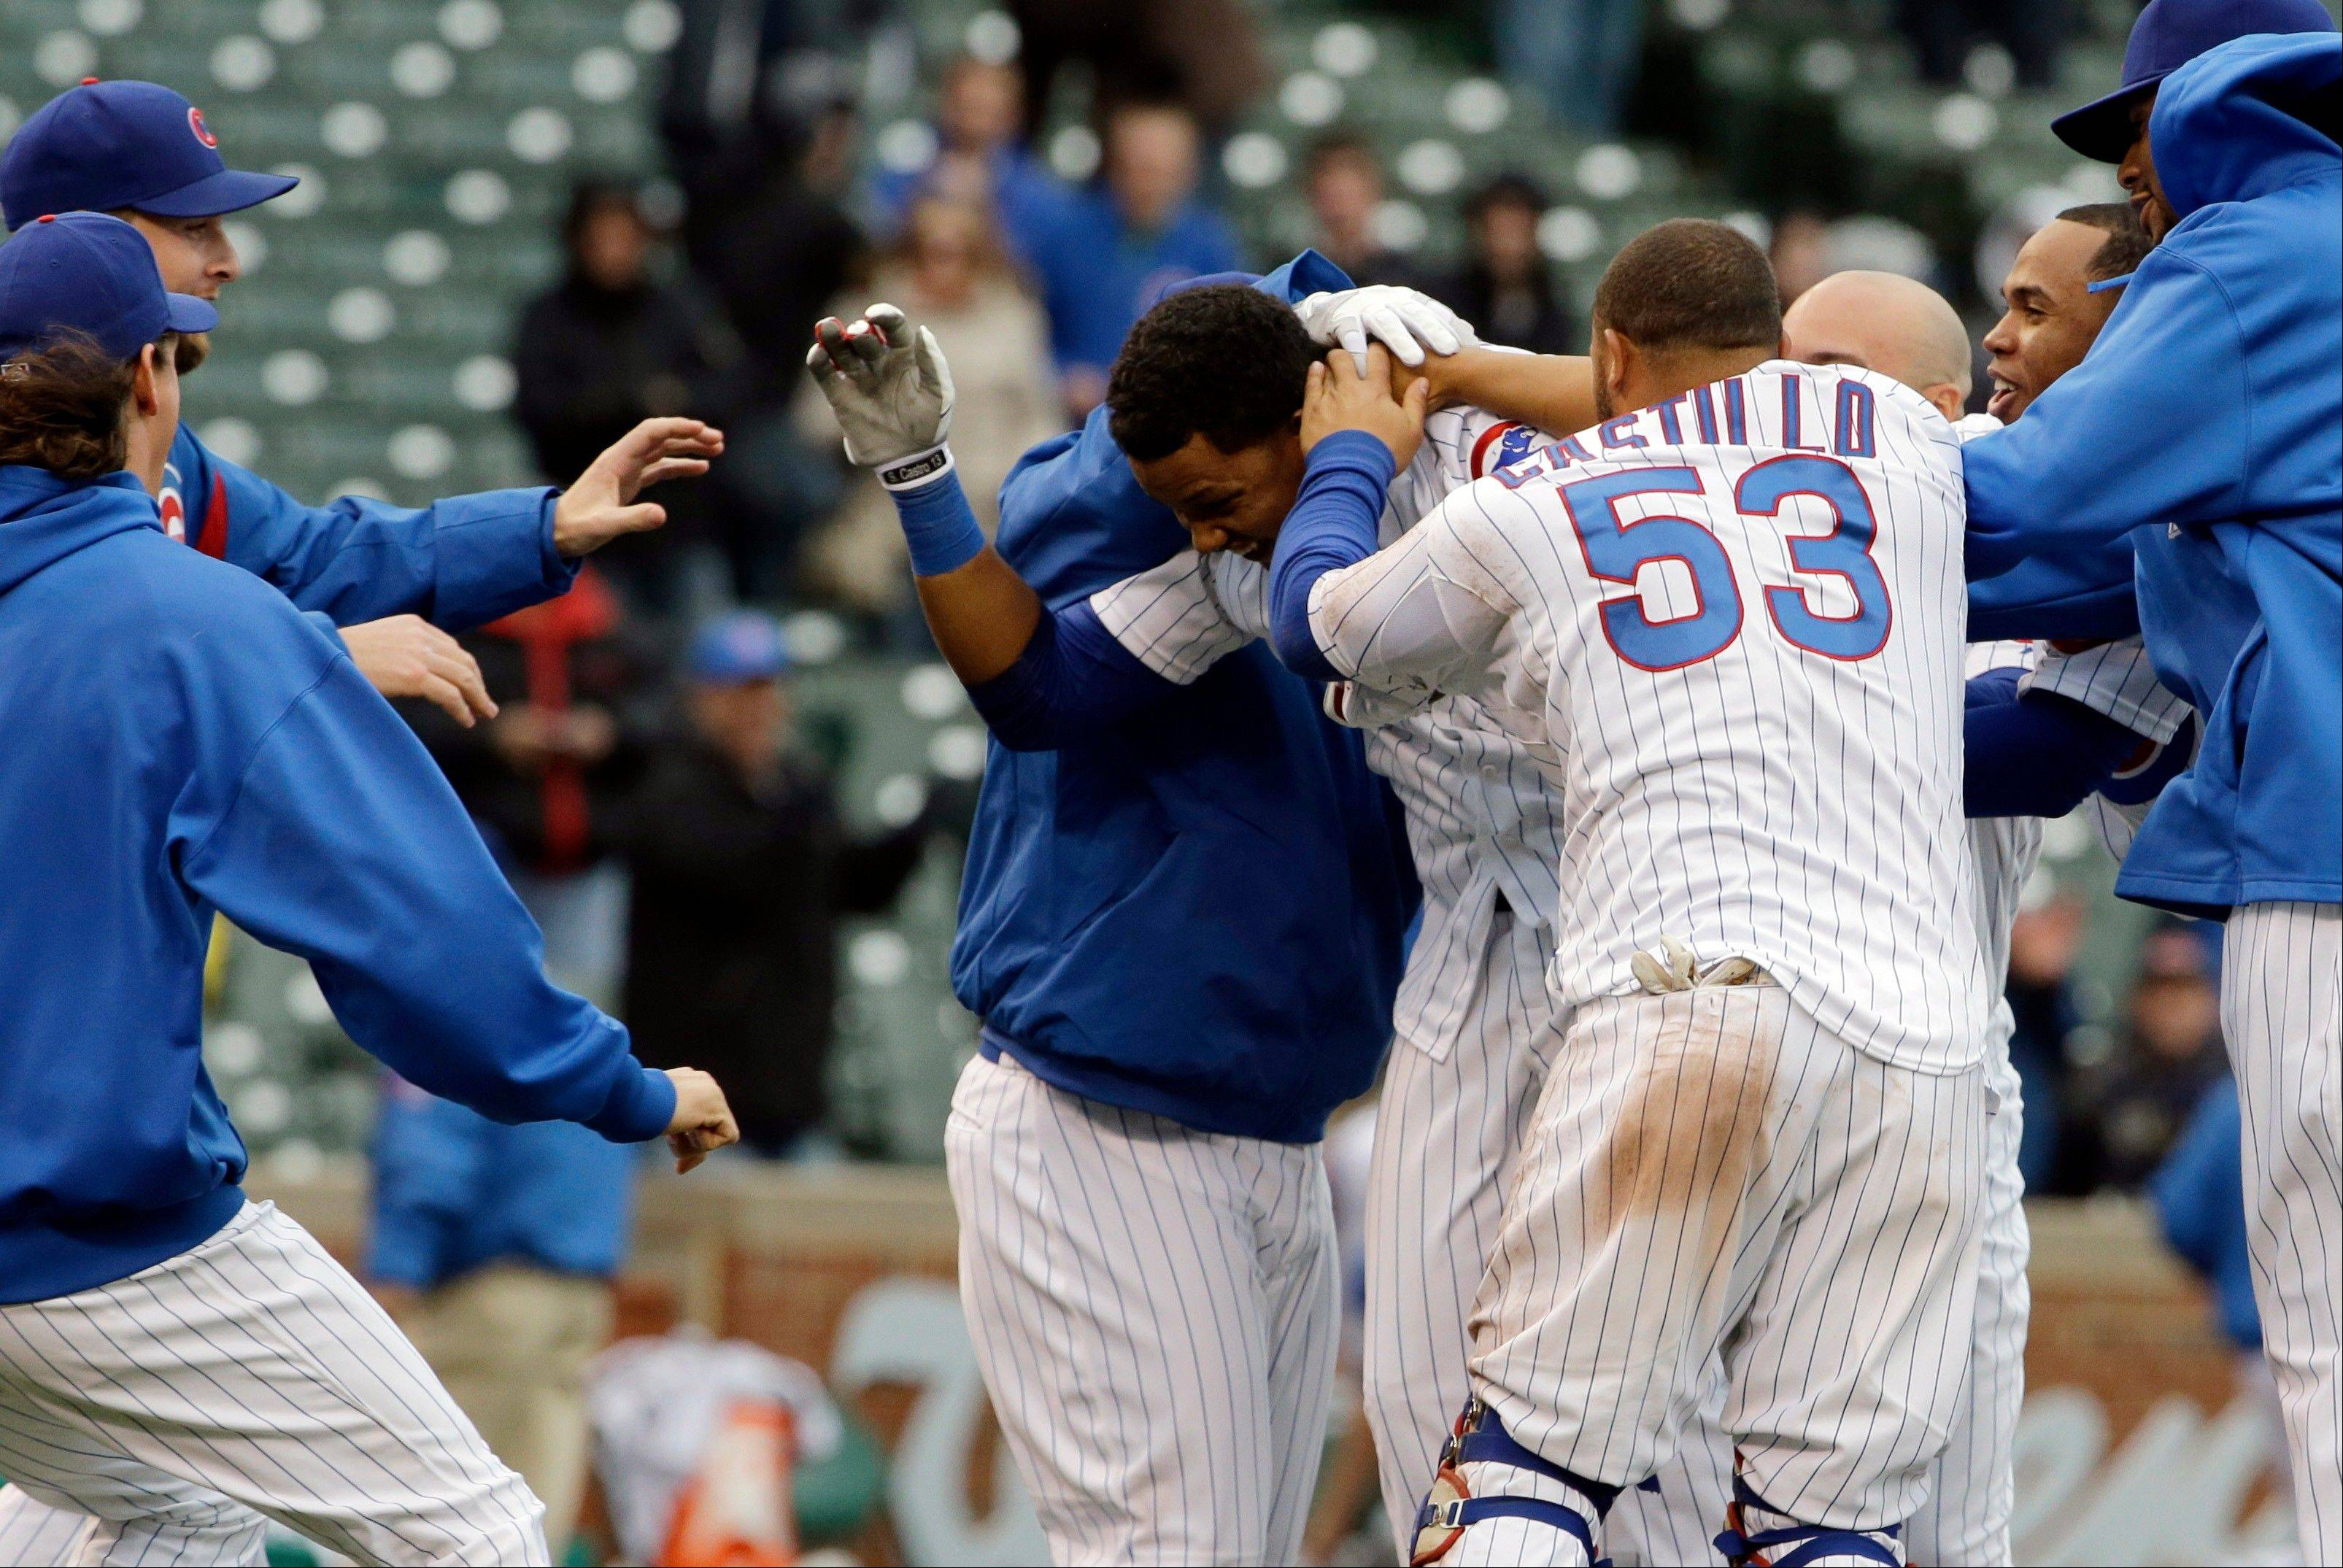 The Cubs' Starlin Castro, center, celebrates with teammates after hitting a game-winning double against the Giants in the ninth inning Friday at Wrigley Field.